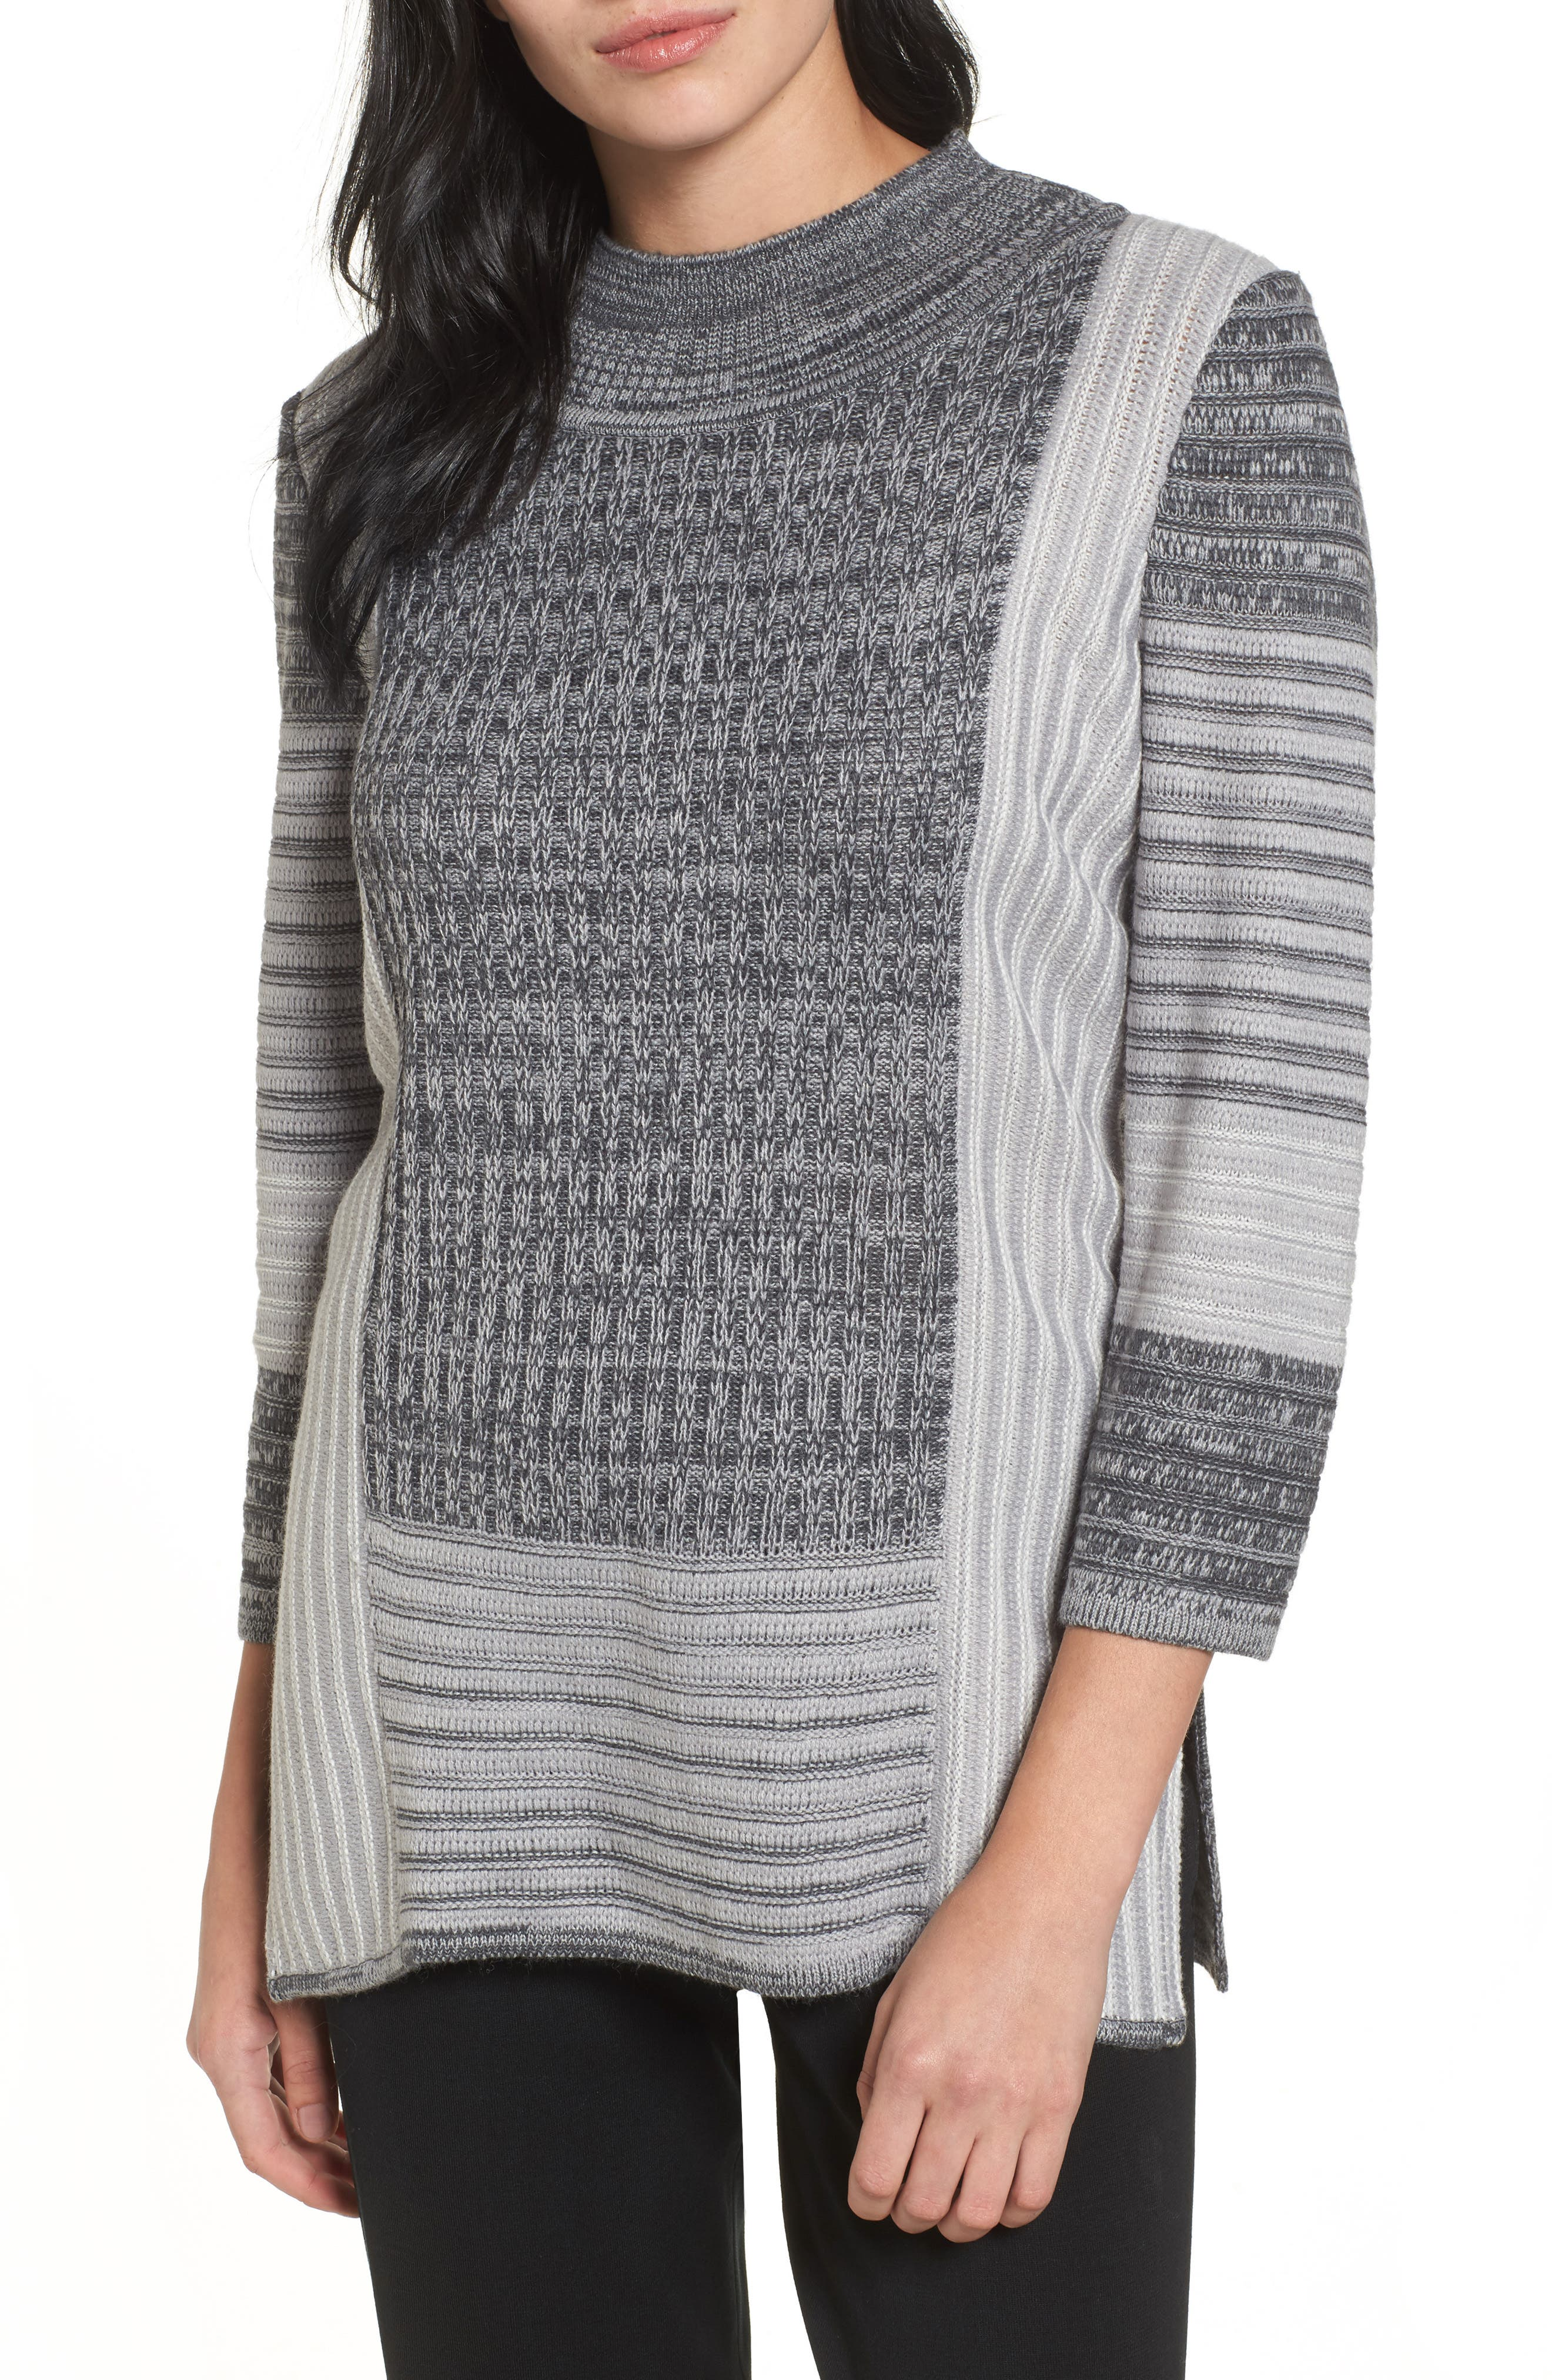 Ming Wang Mixed Knit Tunic Sweater